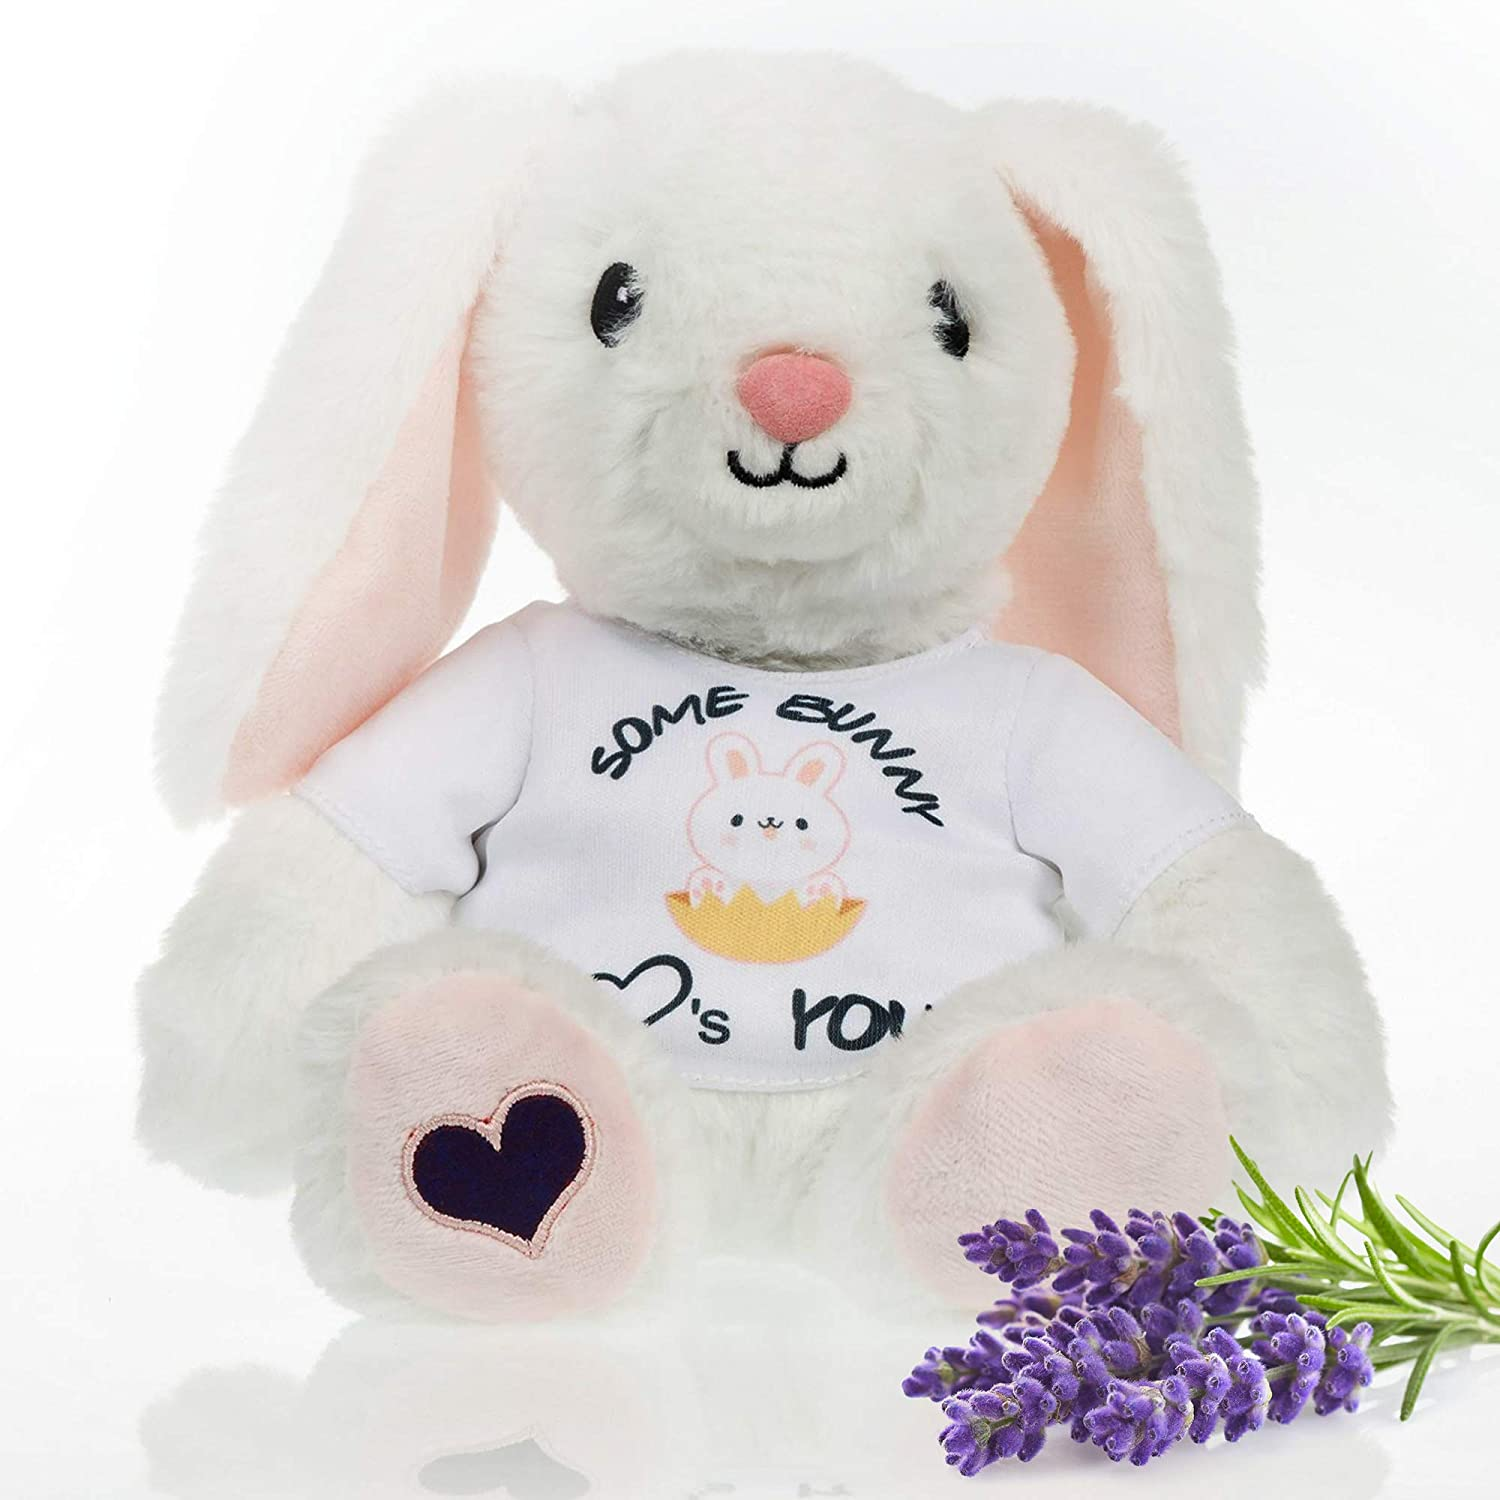 Stuffed Bunny- Heated Microwavable Therapeutic Plush Rabbit Stuffed Animal with French Lavender Scented. Warm Up as Heating Pad to Comfort Illness or Anxiety, Cool to sooth Bruises. Balmy Buddies